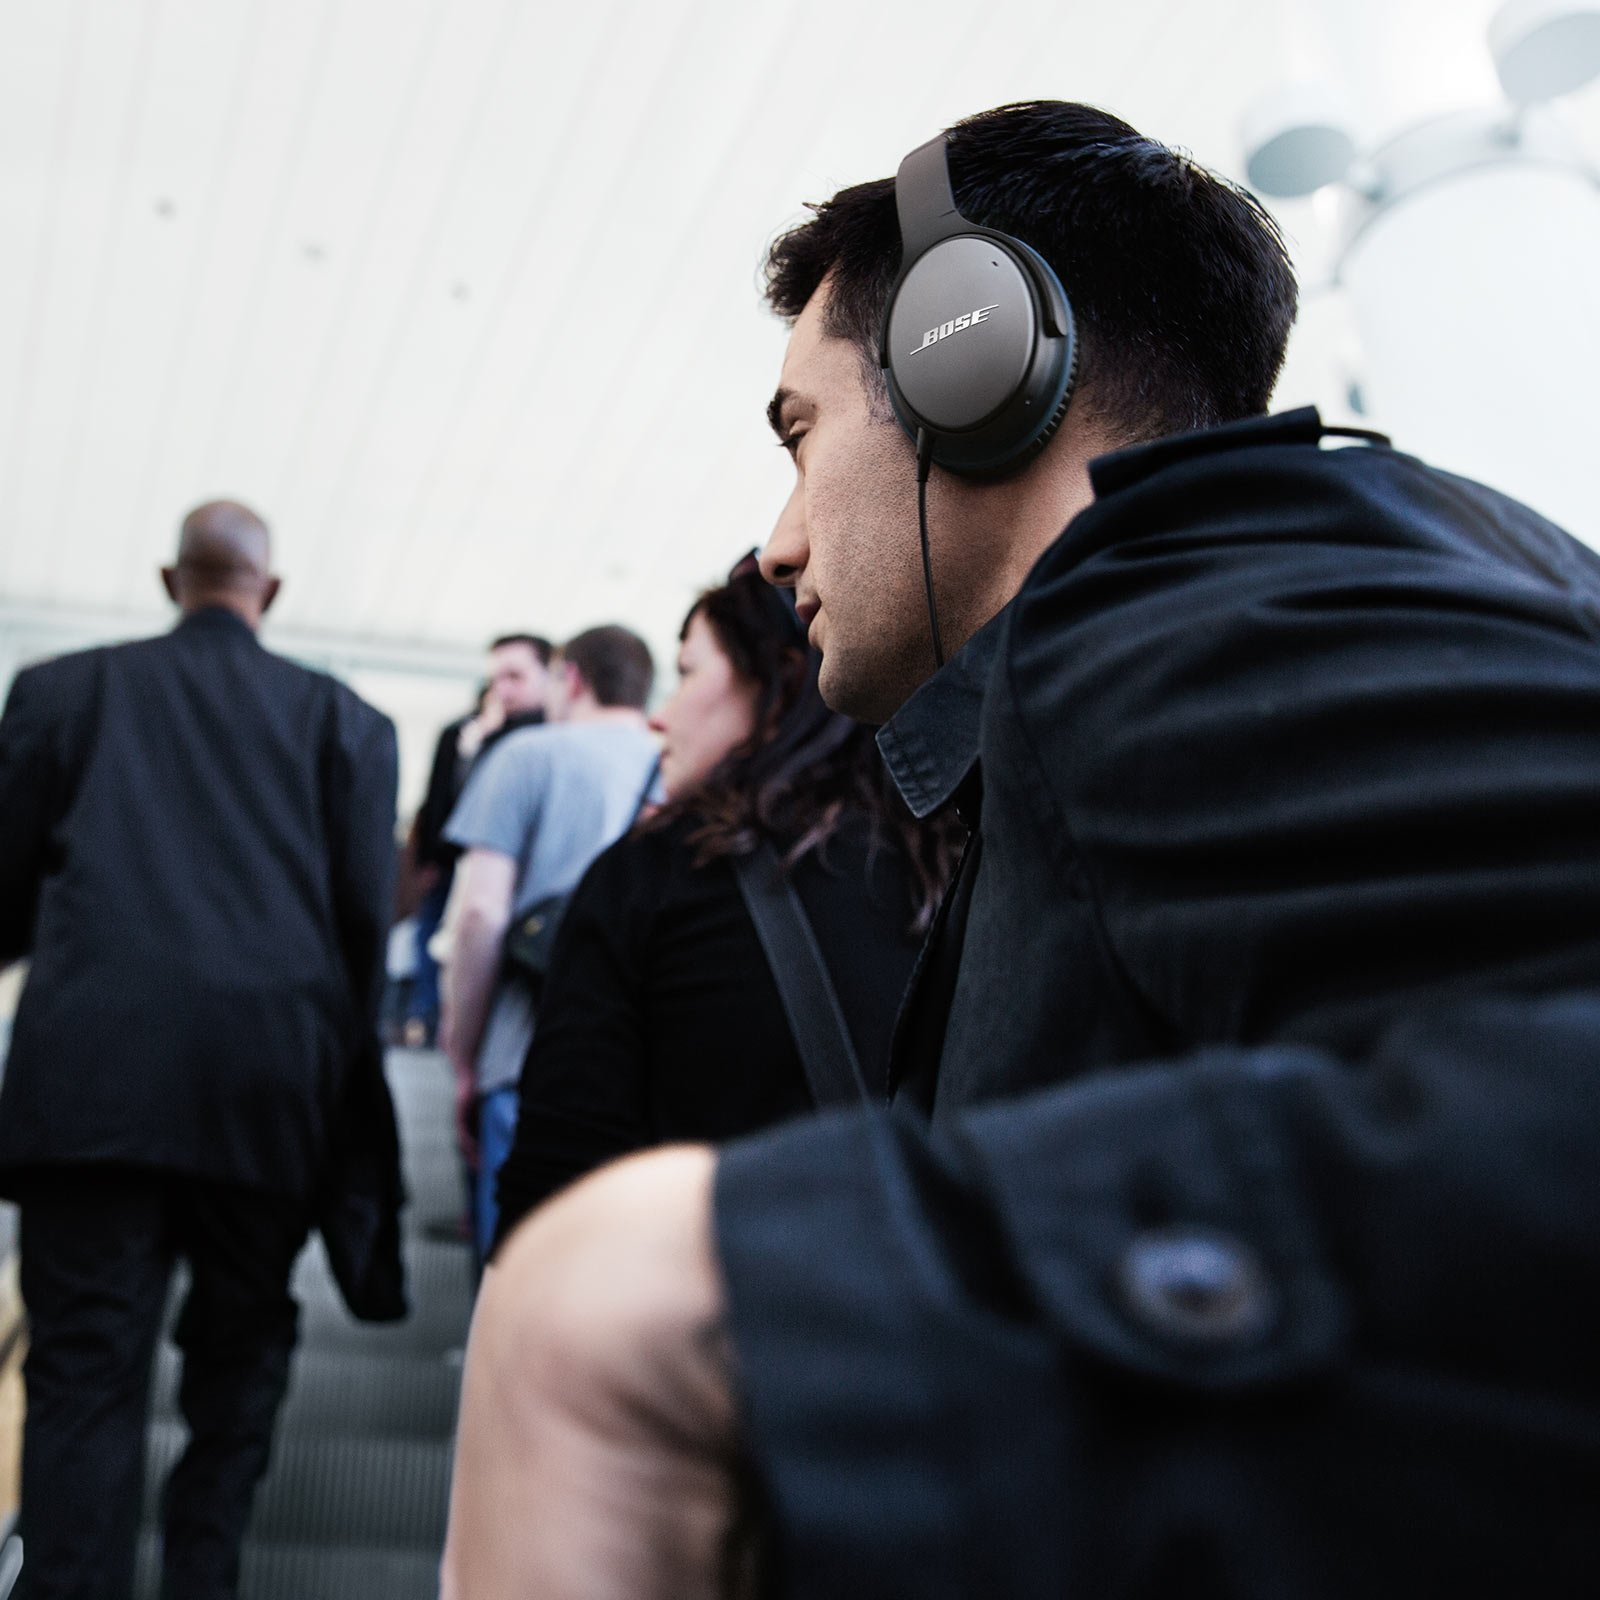 Bose QuietComfort 25 Acoustic Noise Cancelling Headphones for Apple devices - Black (wired, 3.5mm) by Bose (Image #9)